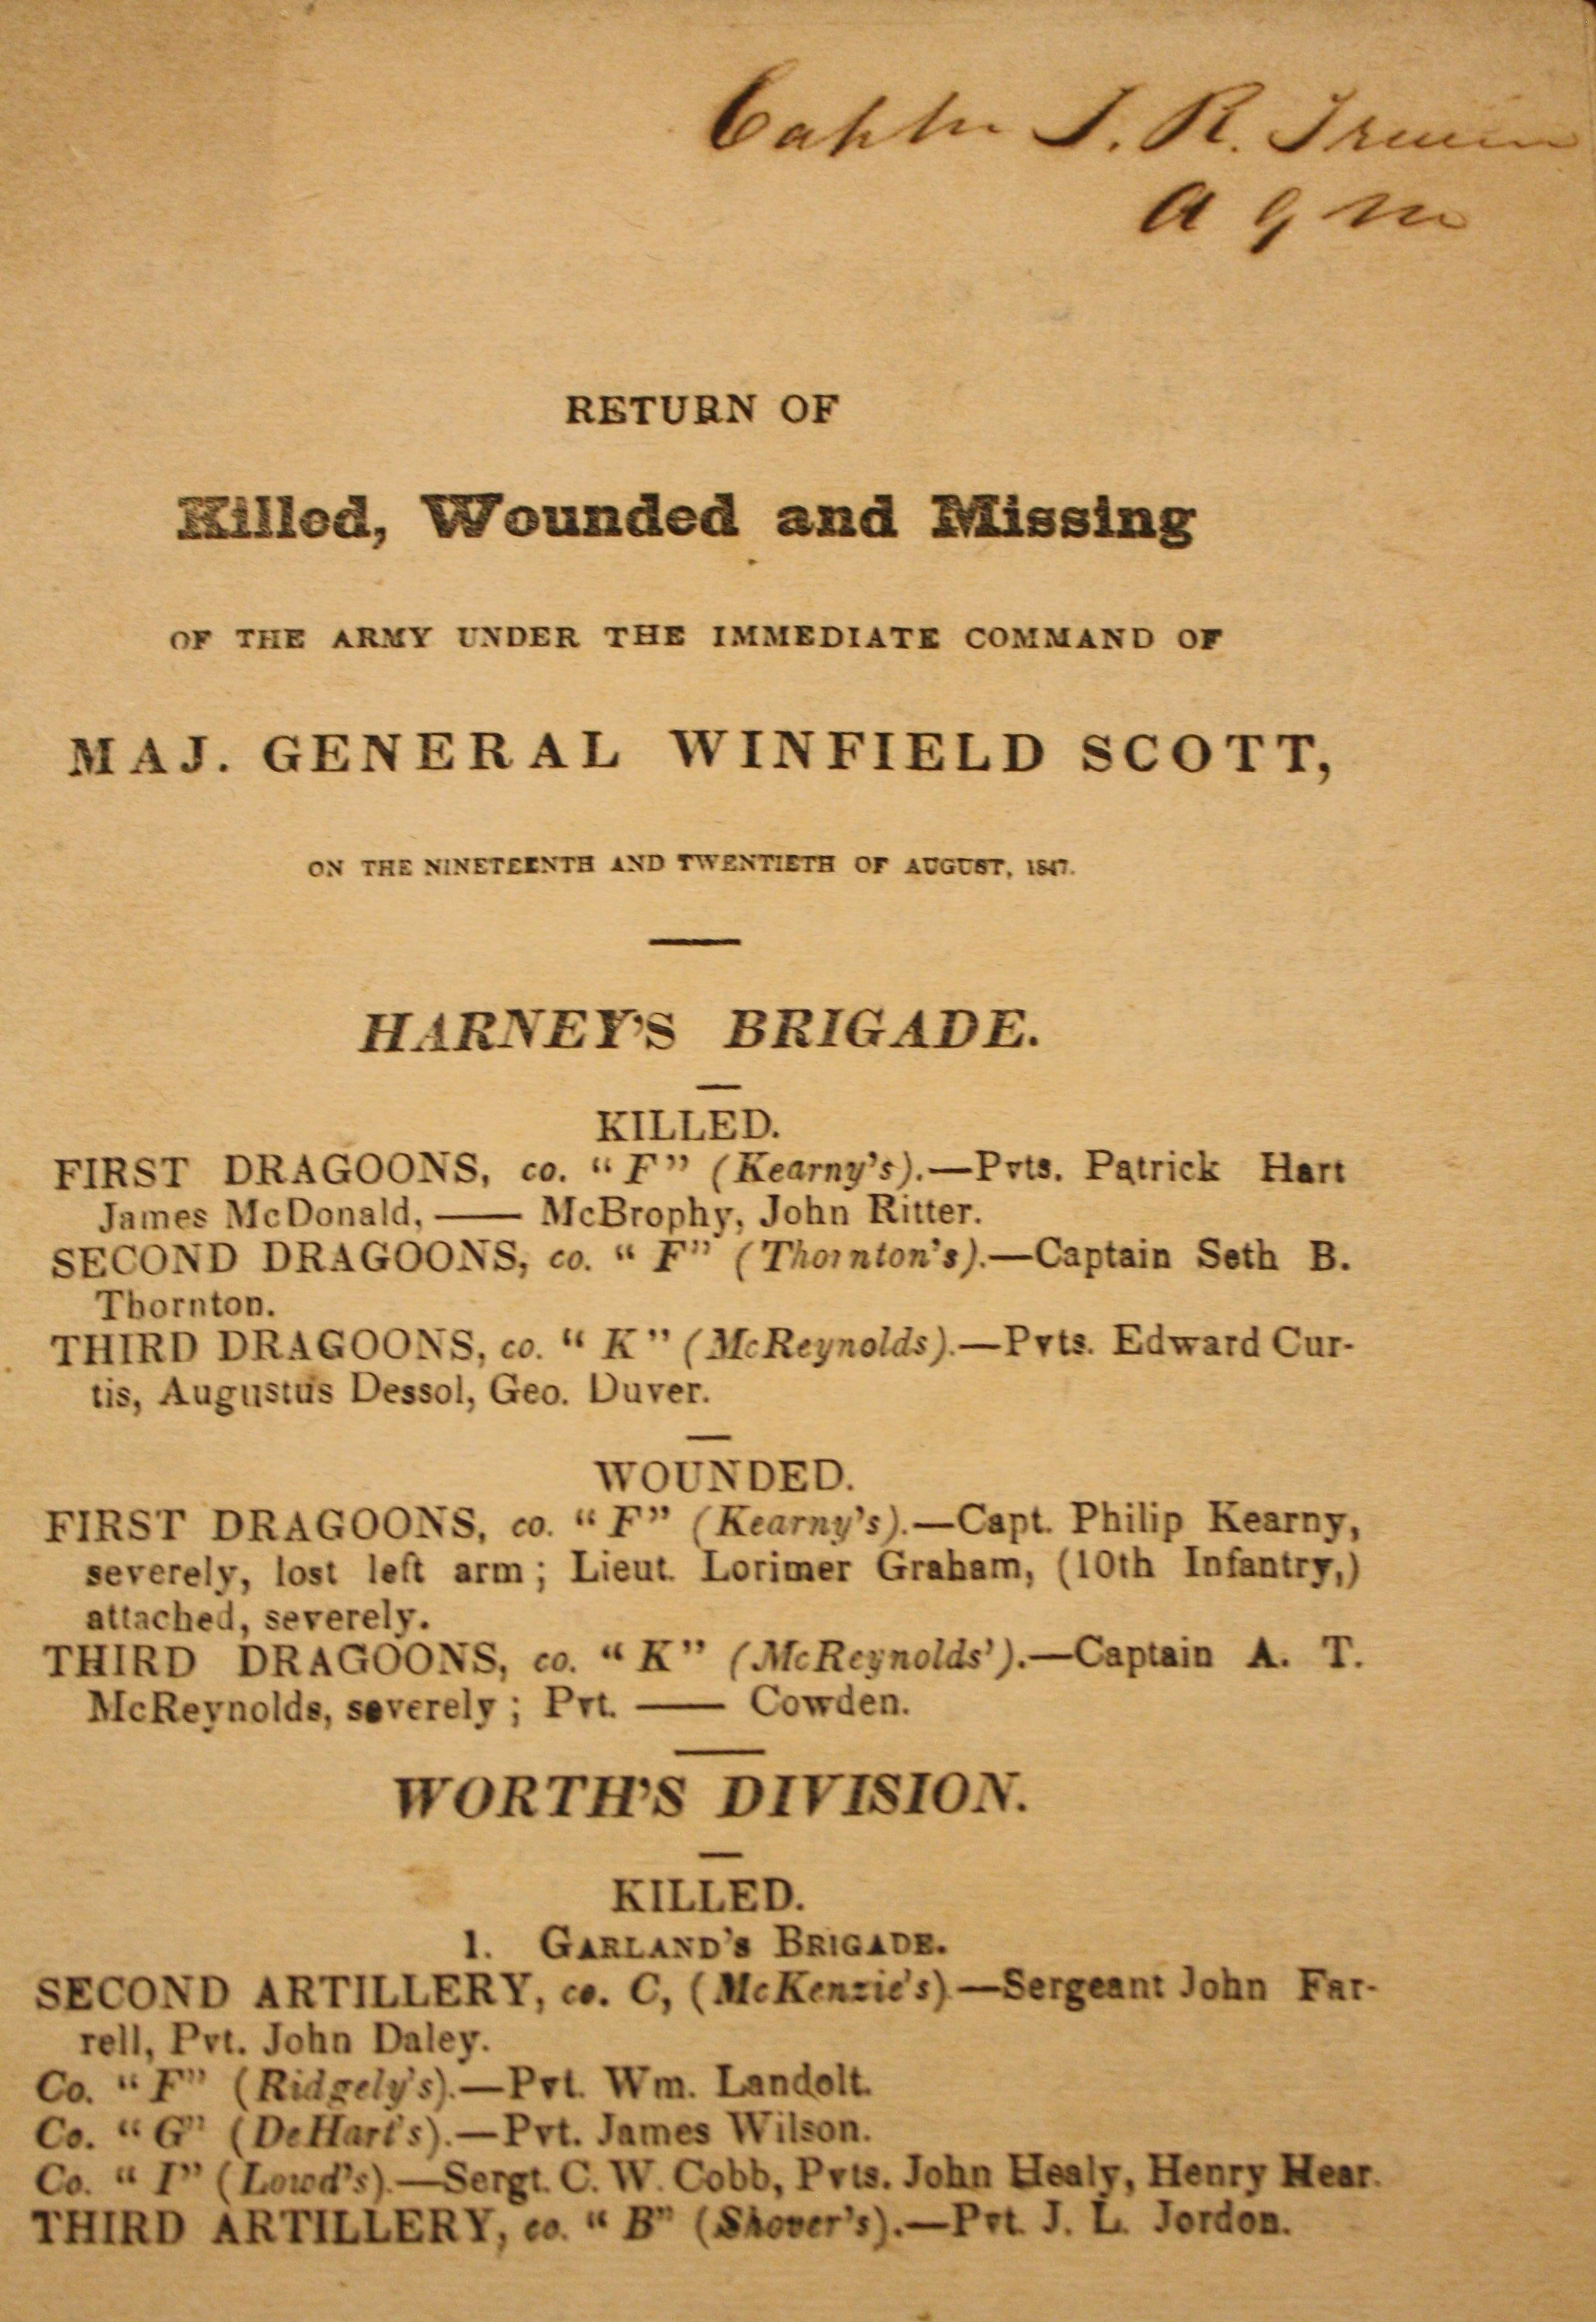 Image for Return of Killed, Wounded and Missing Of The Army Under The Immediate Command Of Maj. General Winfield Scott, On The Nineteenth And Twentieth Of August, 1847